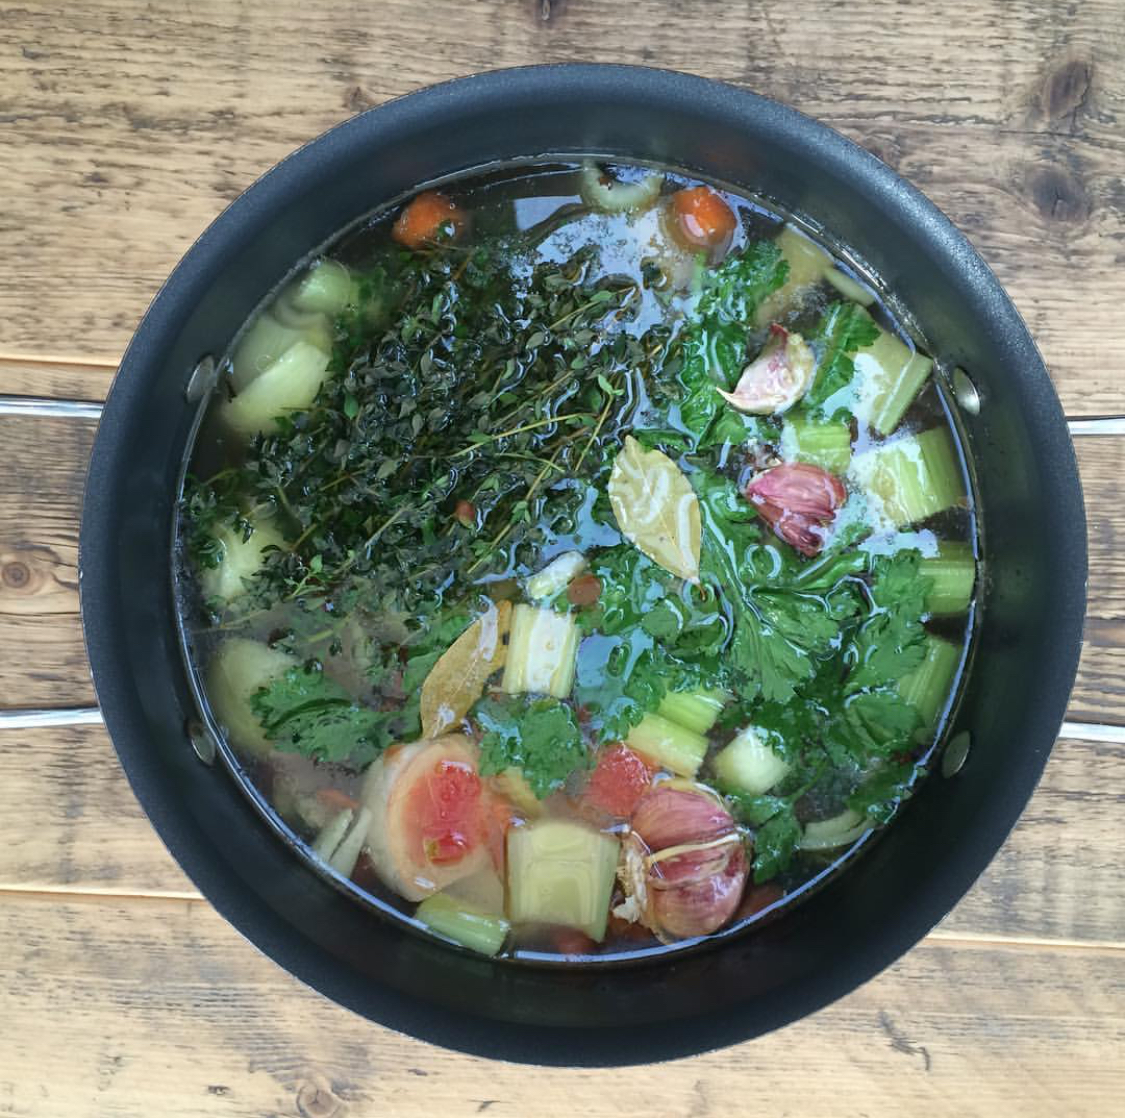 Bone broth is a great way to get extra protein and nutrients in to my diet.  Inspired by the Hemsley and Hemsley cookbook.